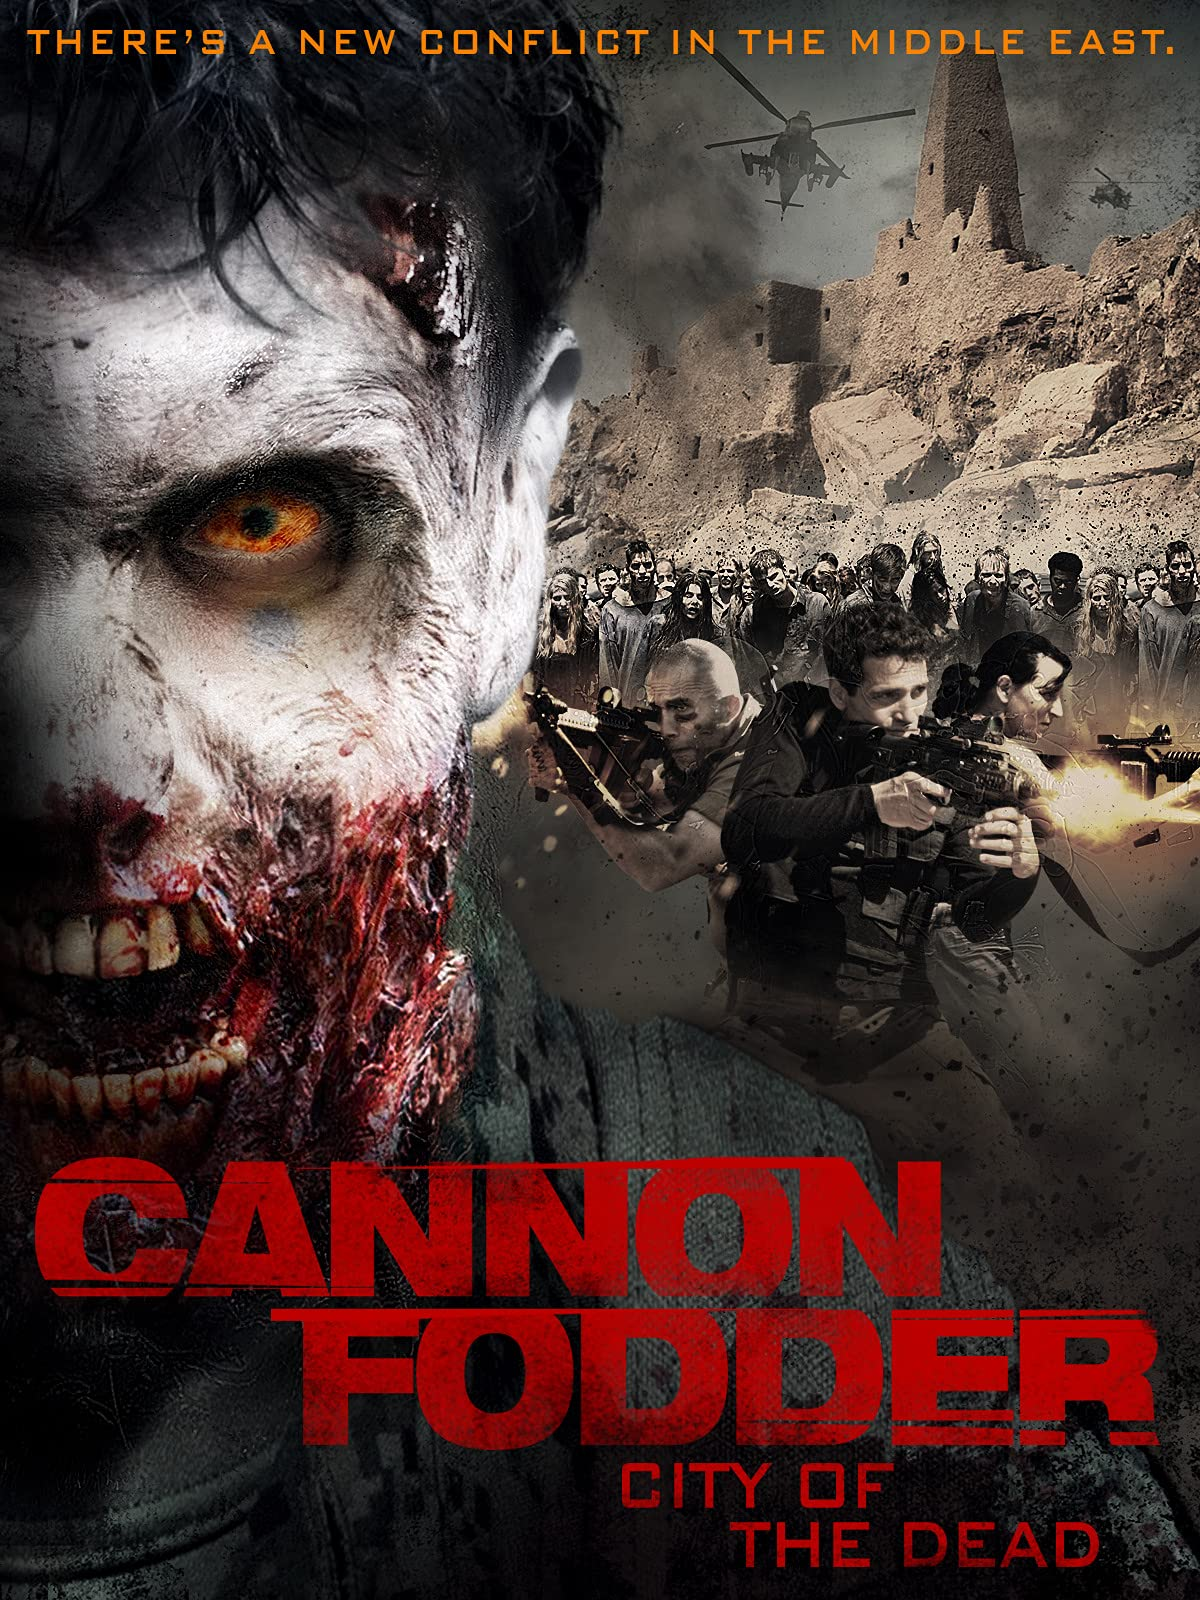 Cannon Fodder City of the Dead